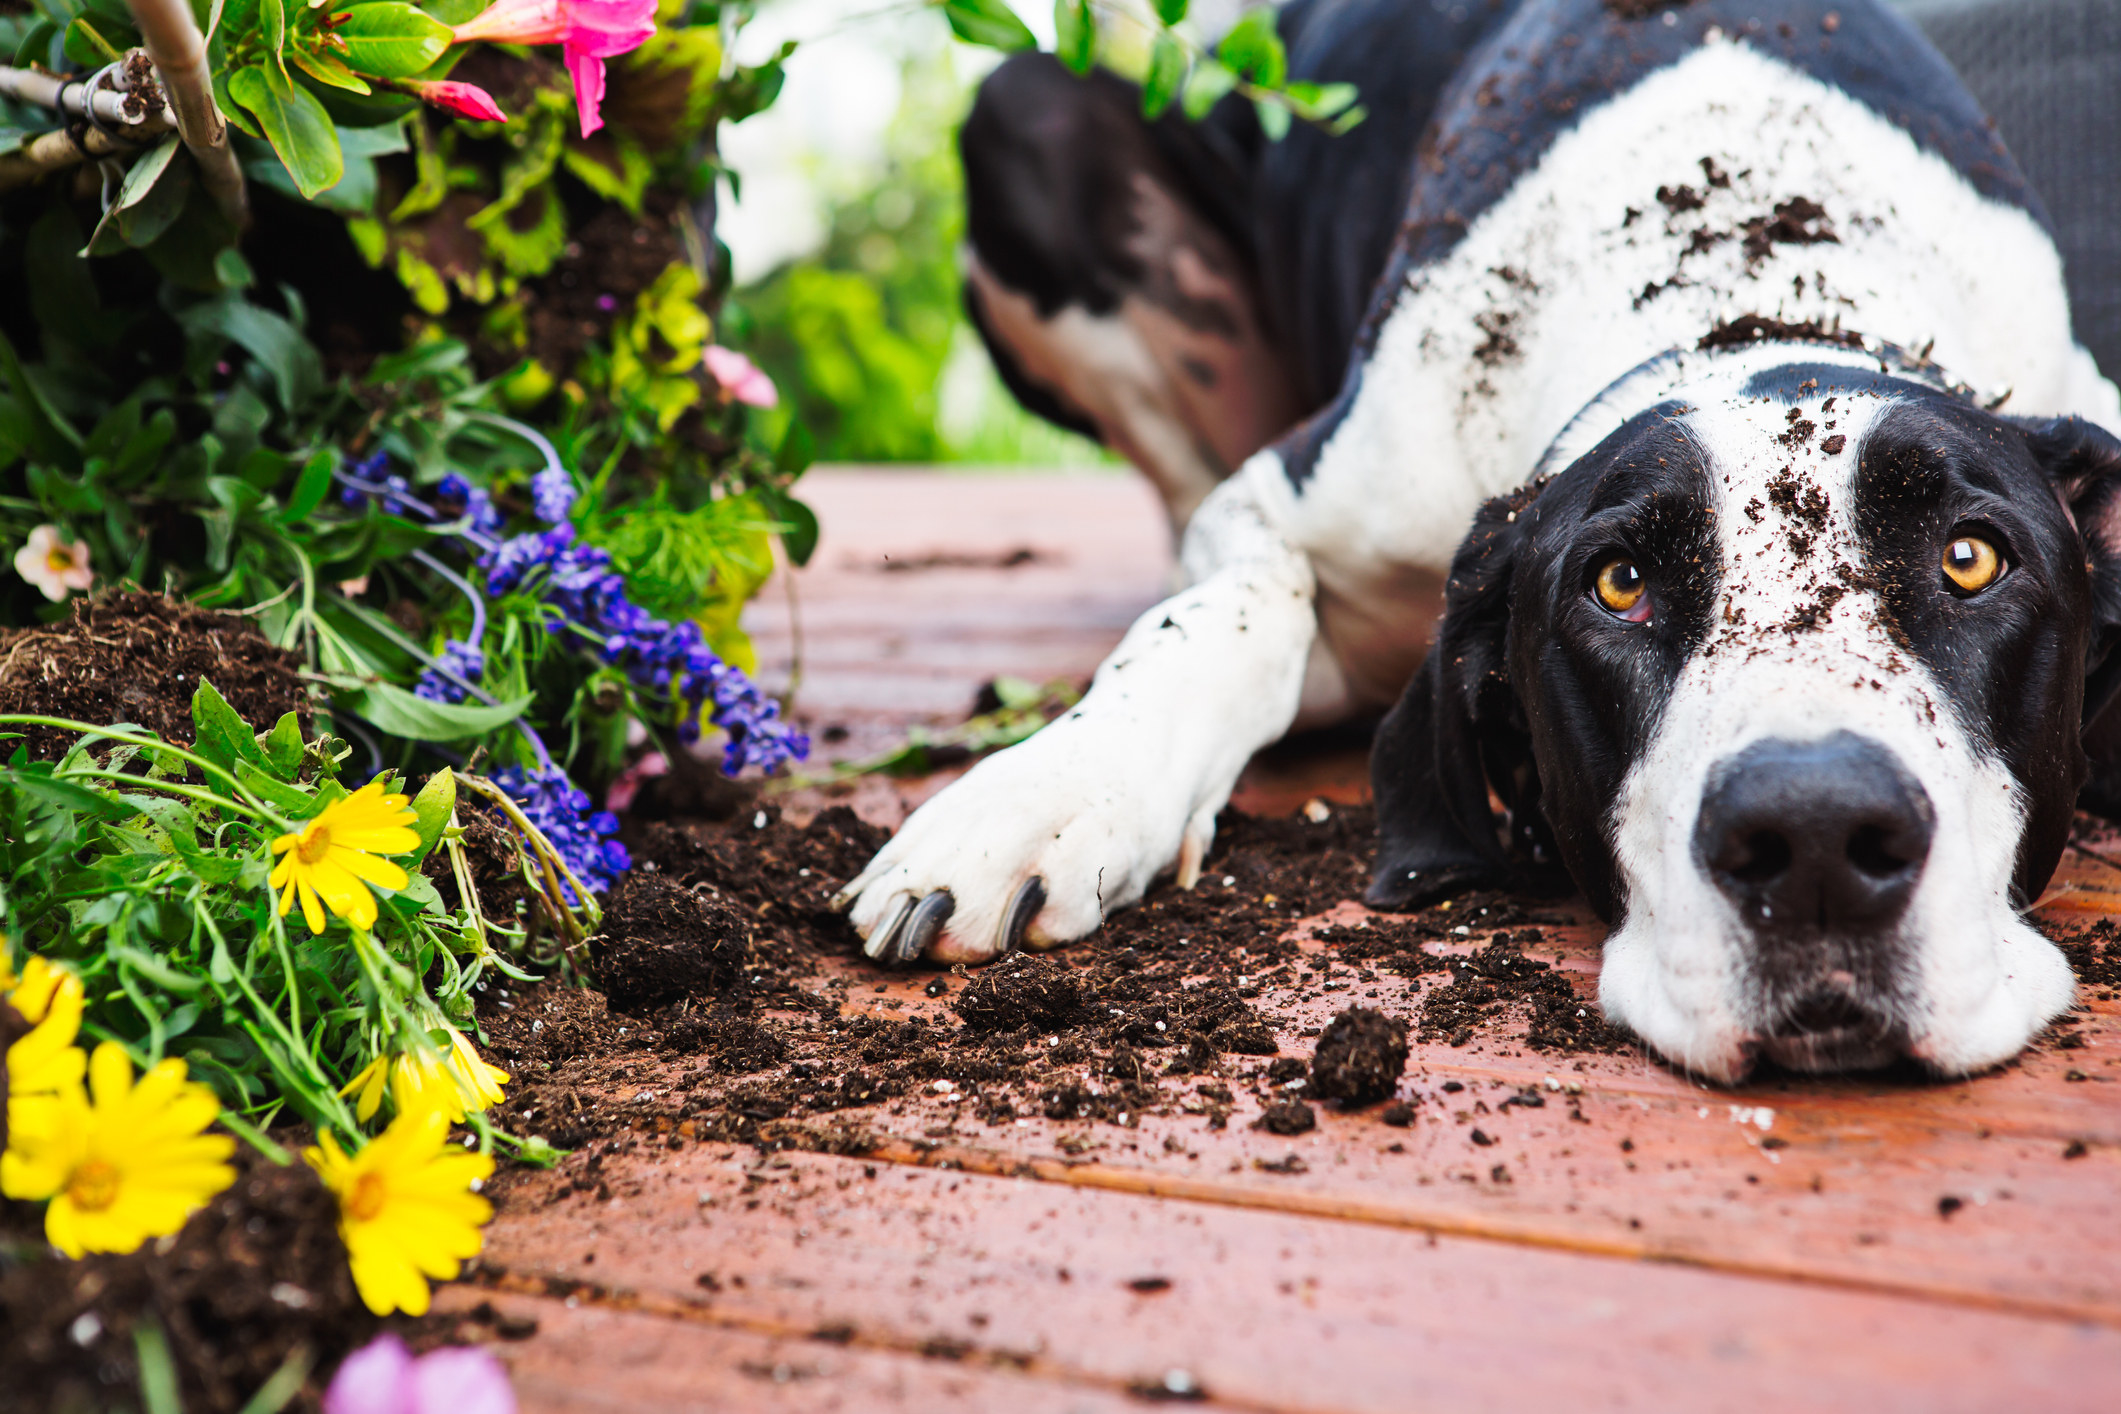 dog in a pile of dirt after digging up some flowers